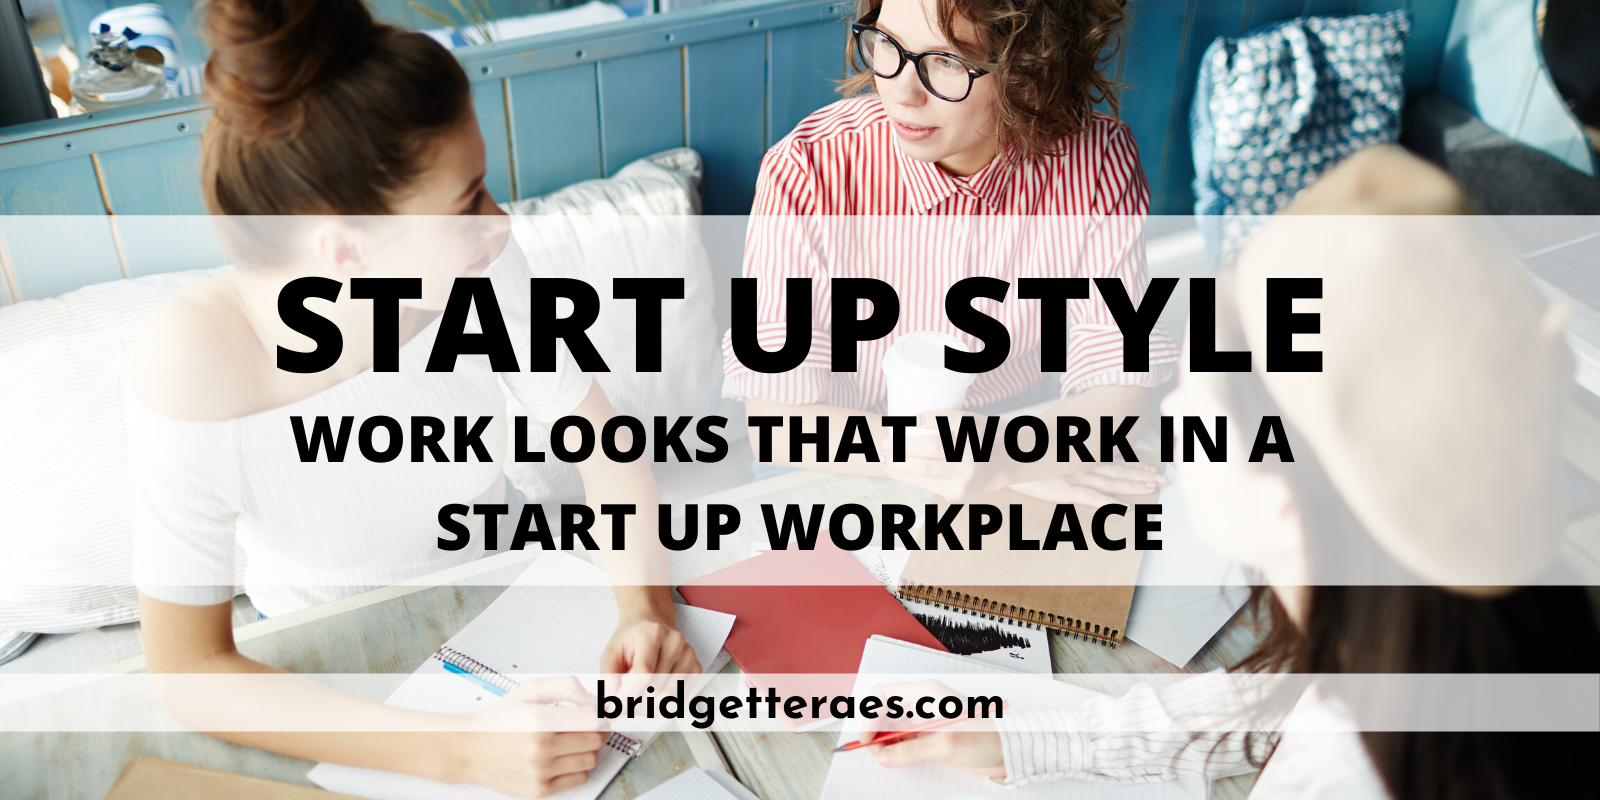 Start Up Style: Work Looks that Work in a Start Up Workplace